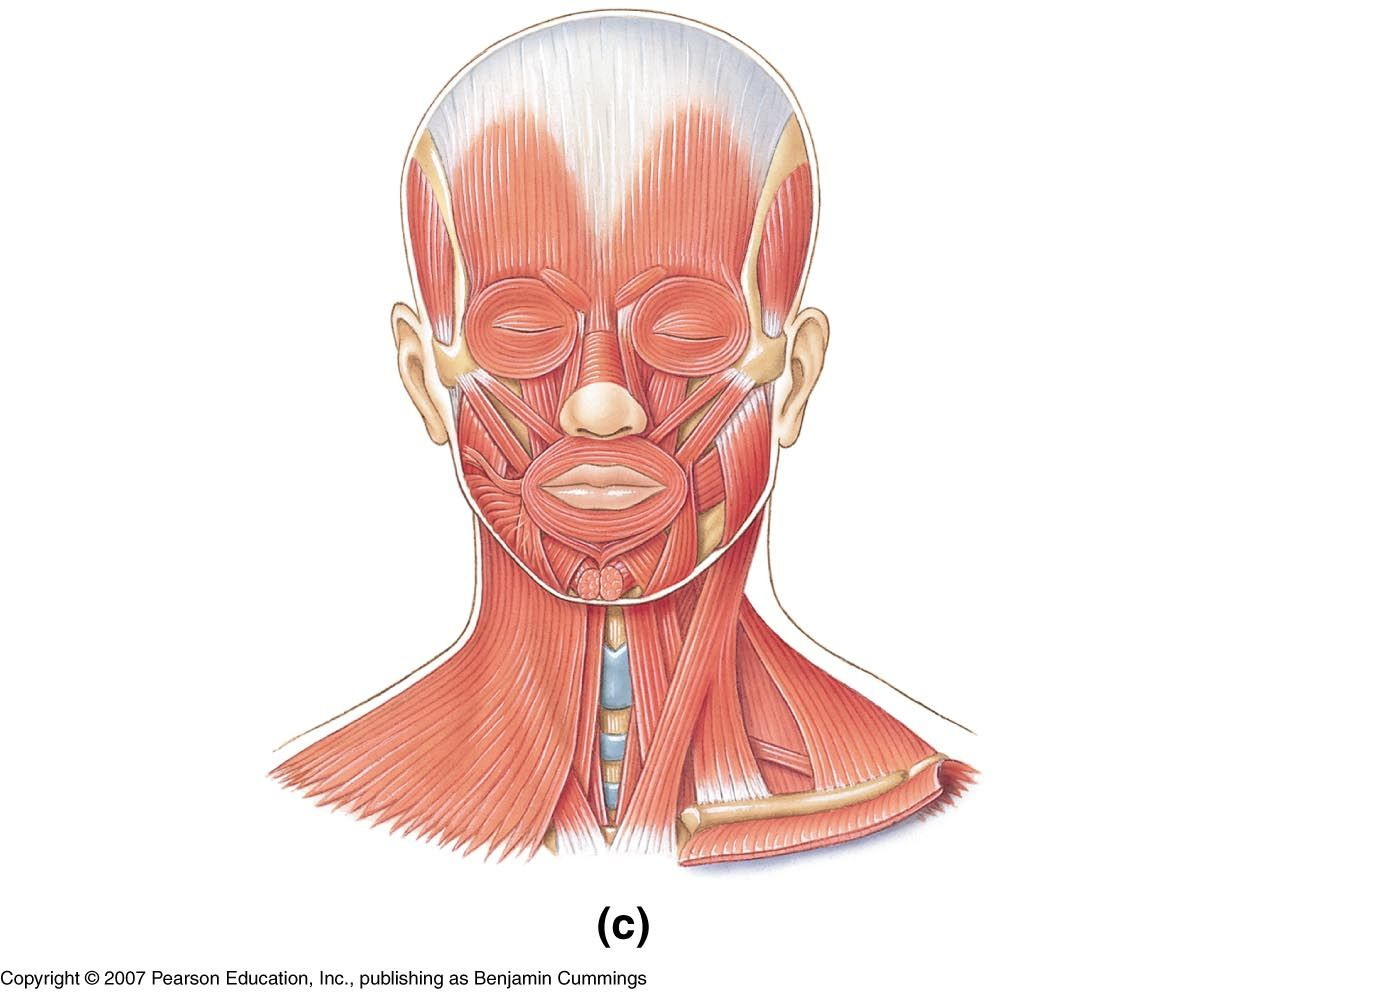 head and neck muscles diagram blank visual studio generate sequence of the face unlabeled study resources